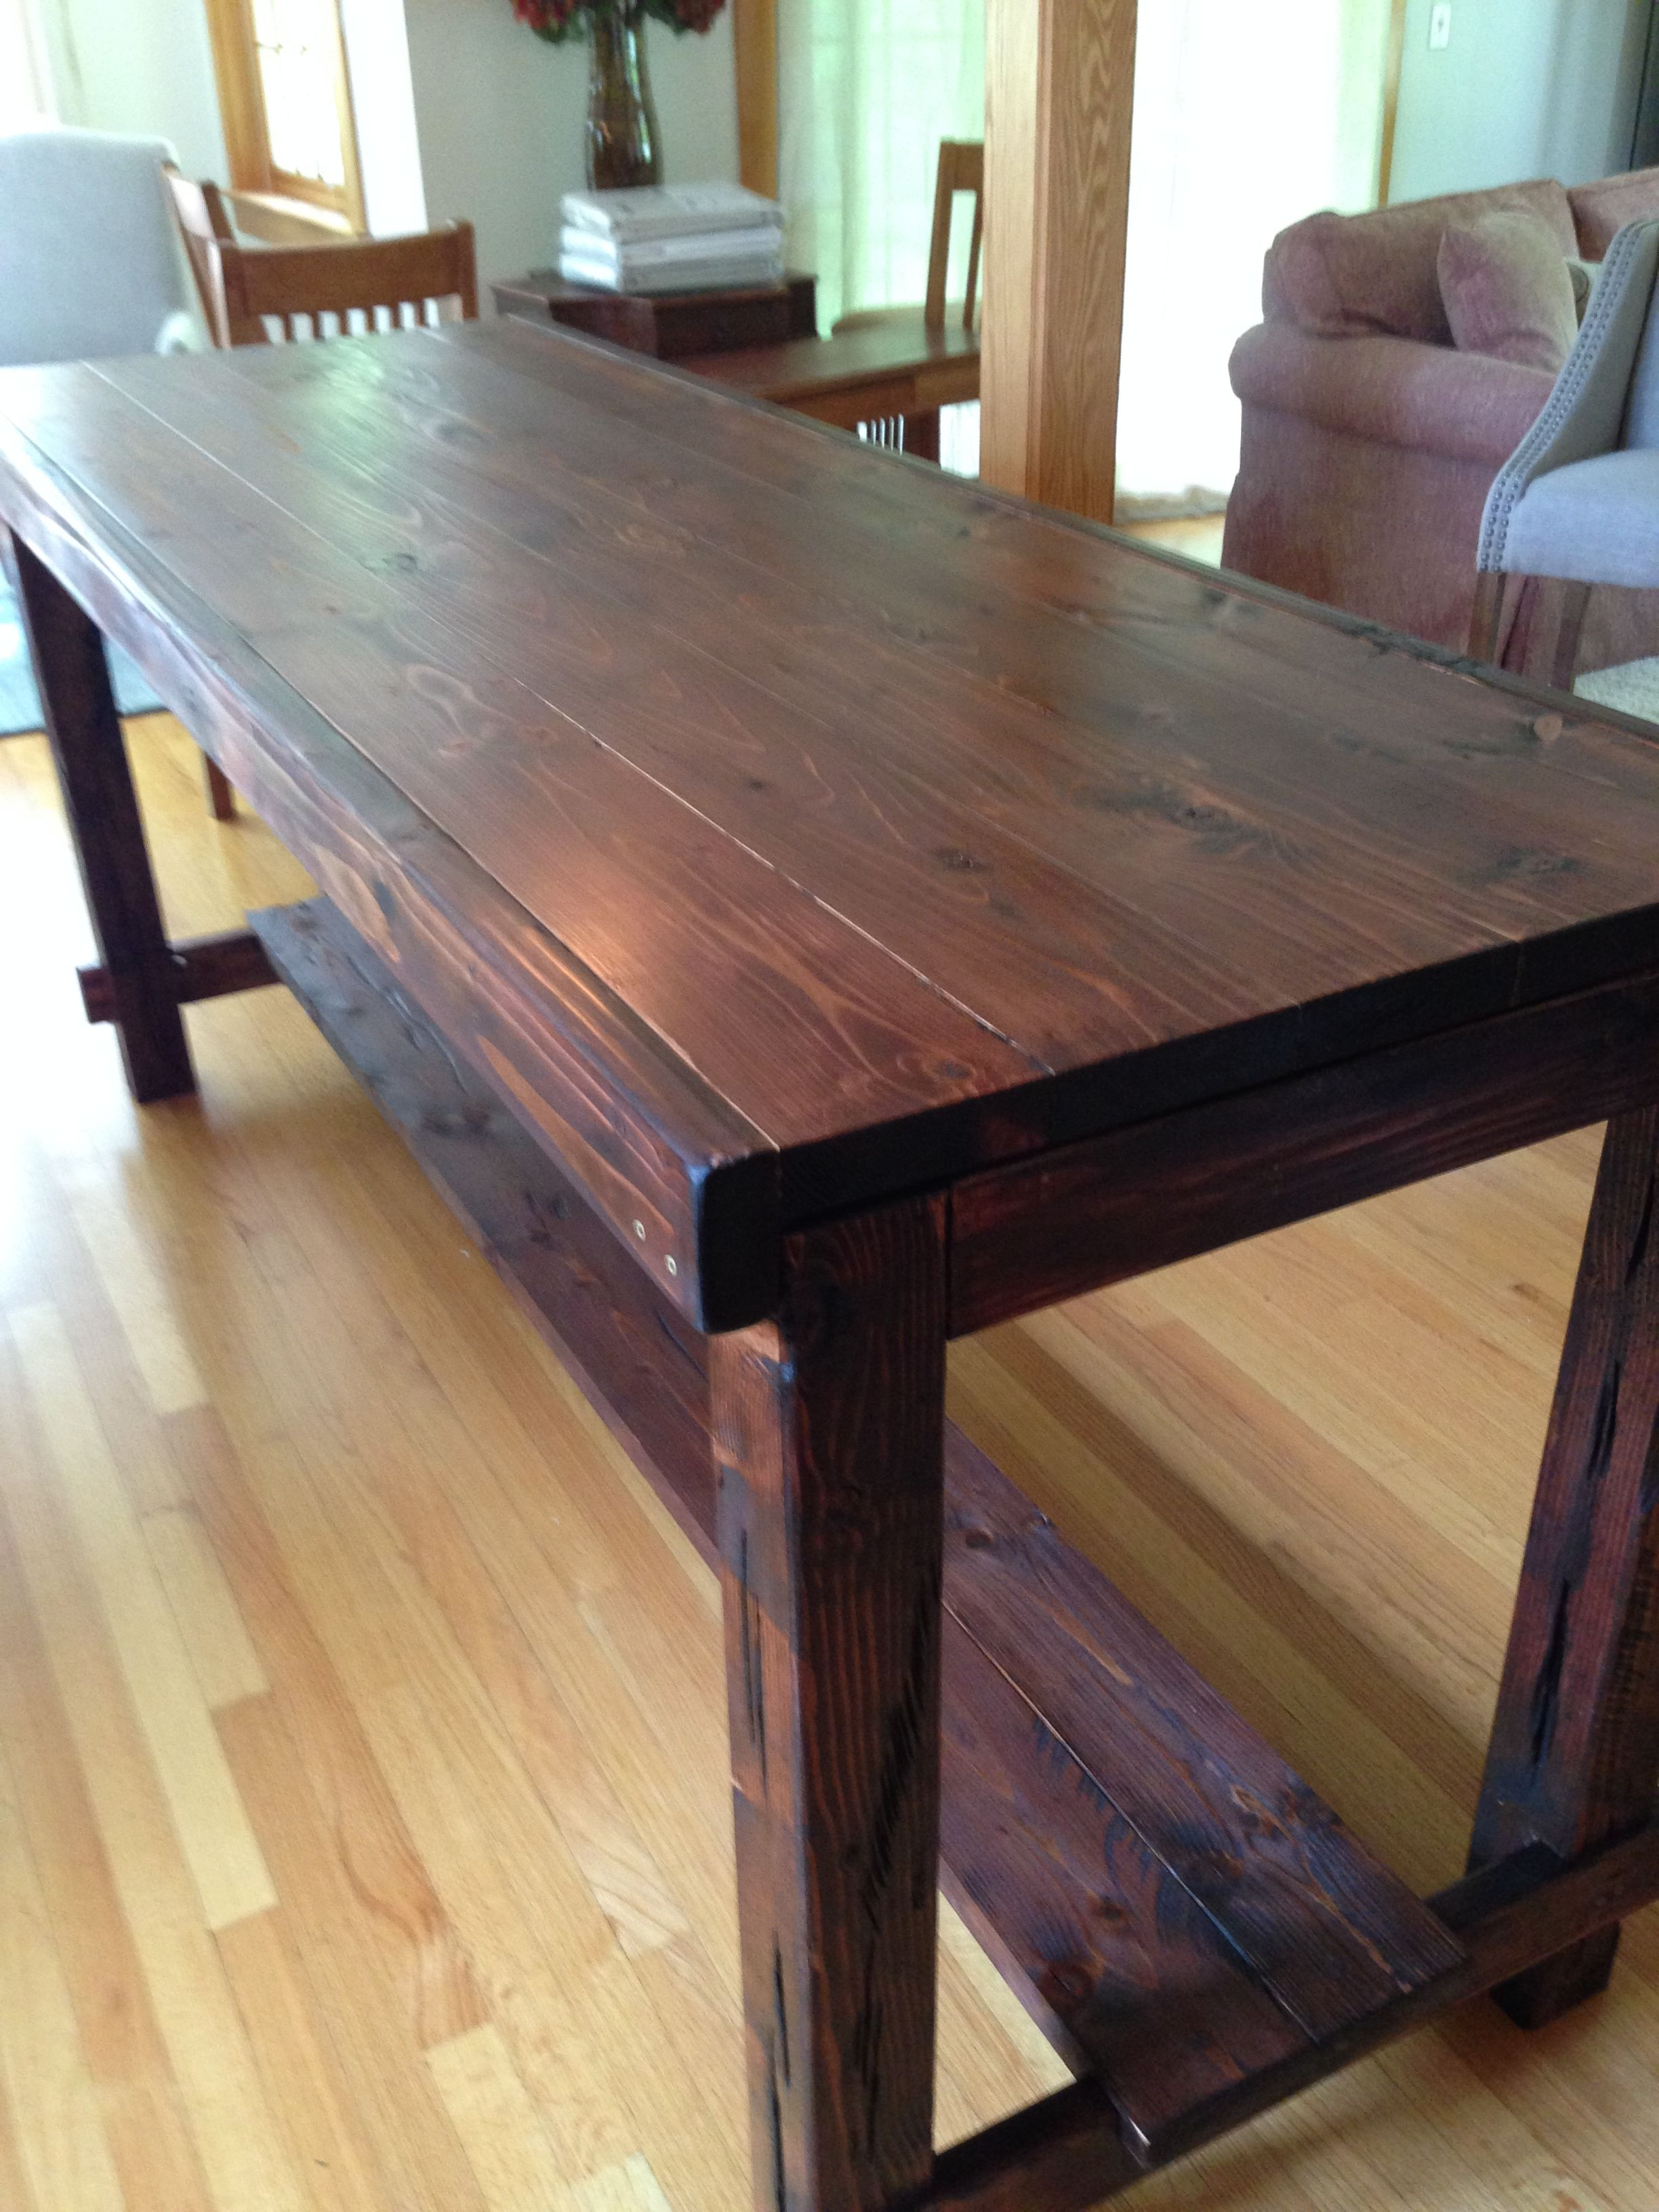 Merveilleux Counter Height Farm Table In Custom Red Mahogany, Aged And Distressed.  Barleycorn Woodworks, Northwood, NH